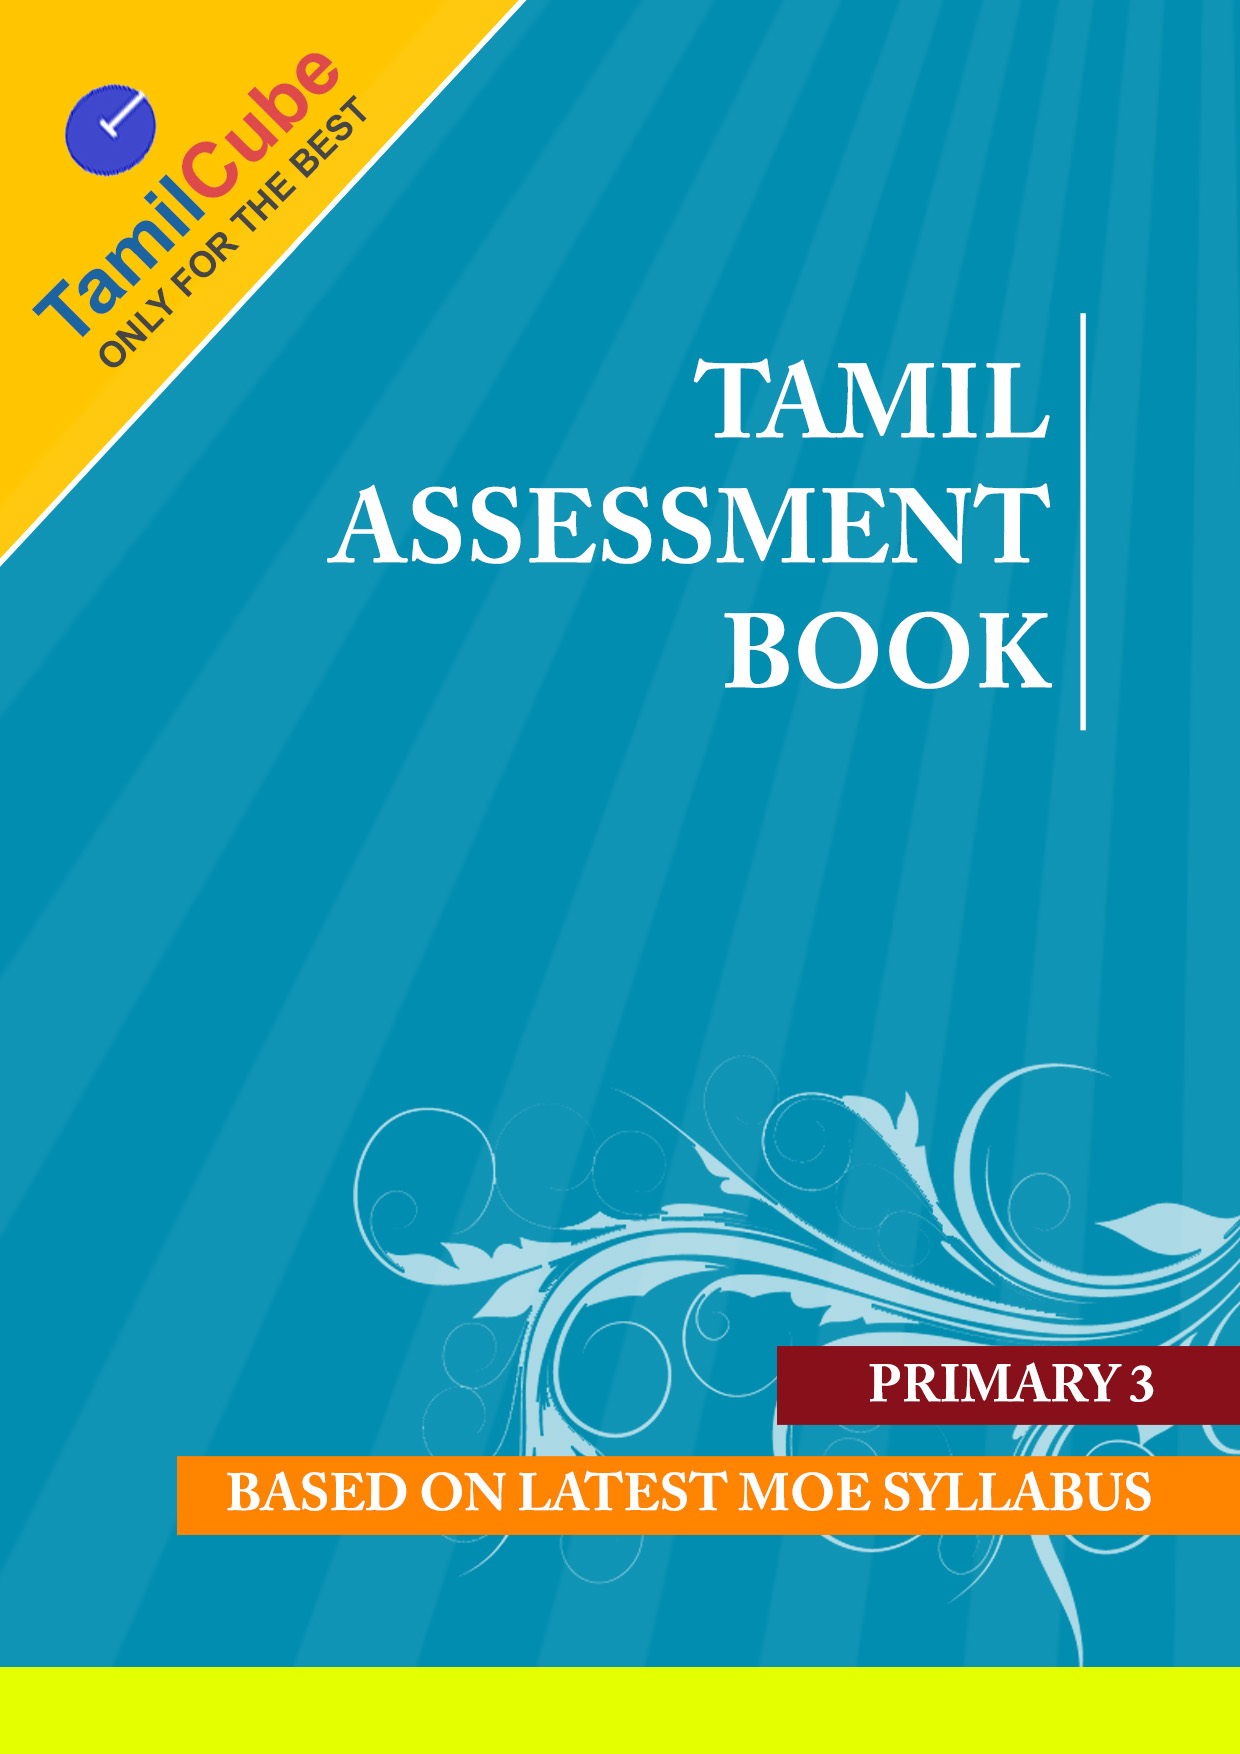 Primary 3 (P3) Tamil assessment book (Tamilcube ...